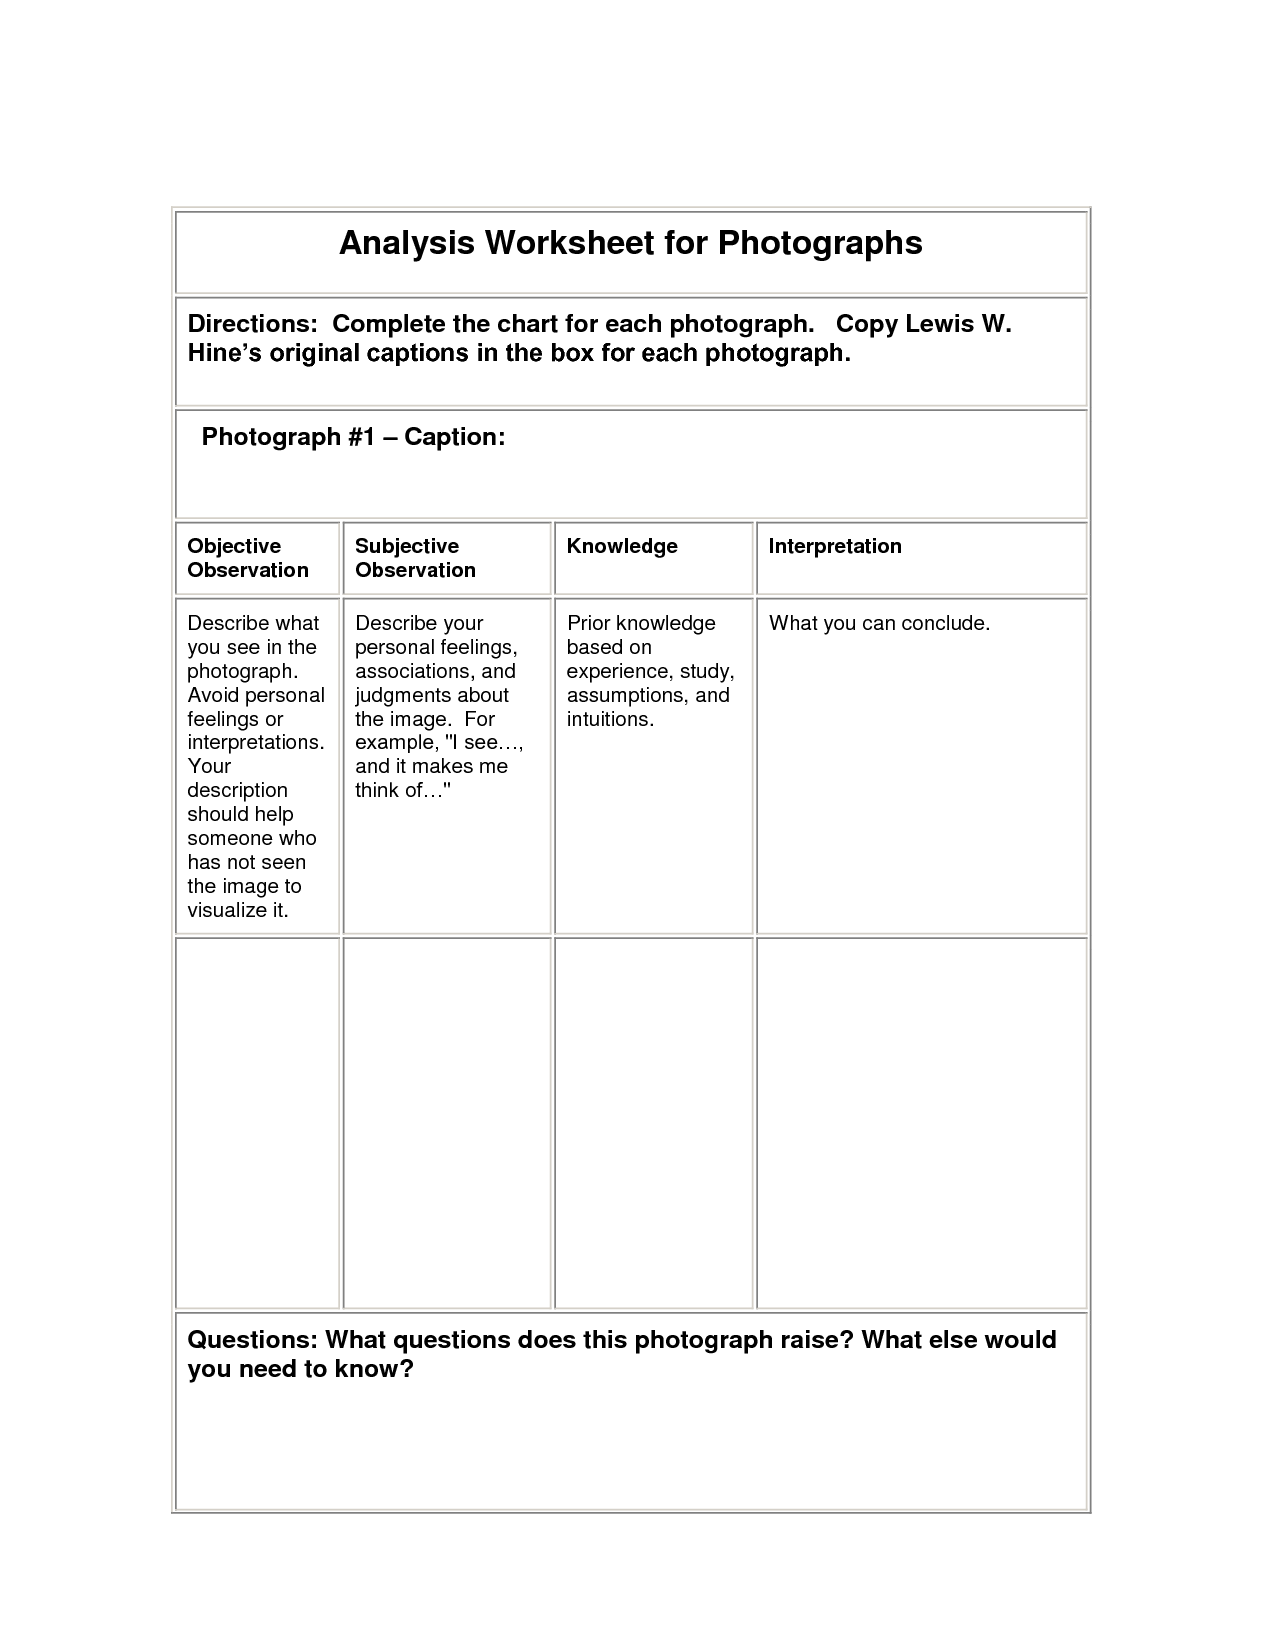 Analysis Worksheet For Lewis Hine Photographs Lewis Hine